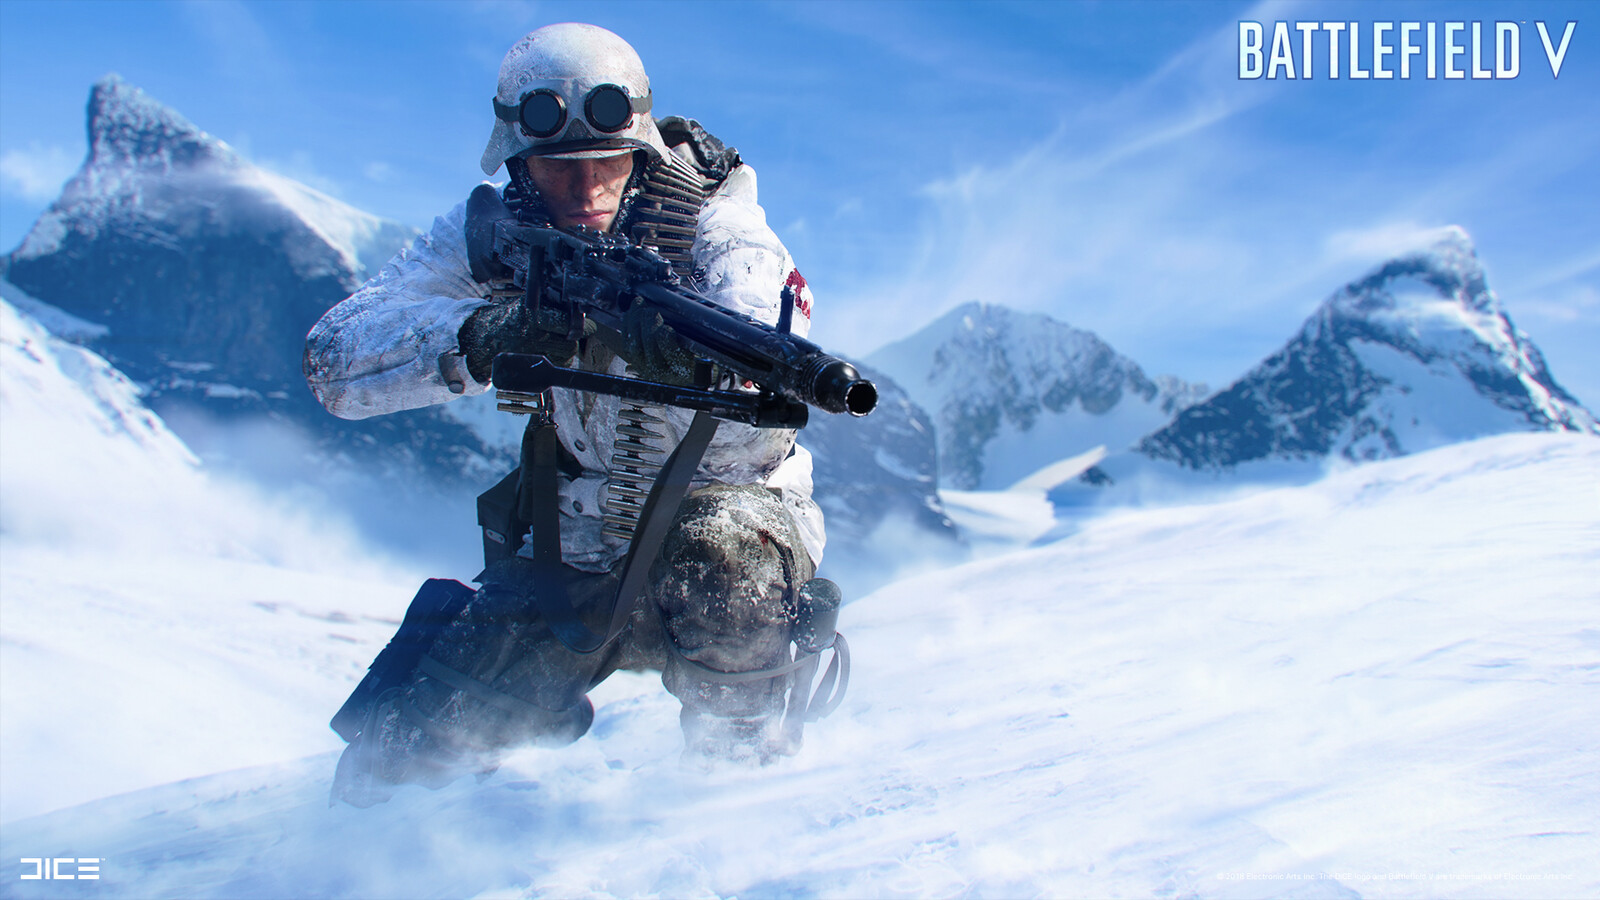 """""""Battlefield V"""" - Axis Support in Norway - Visual target concept"""